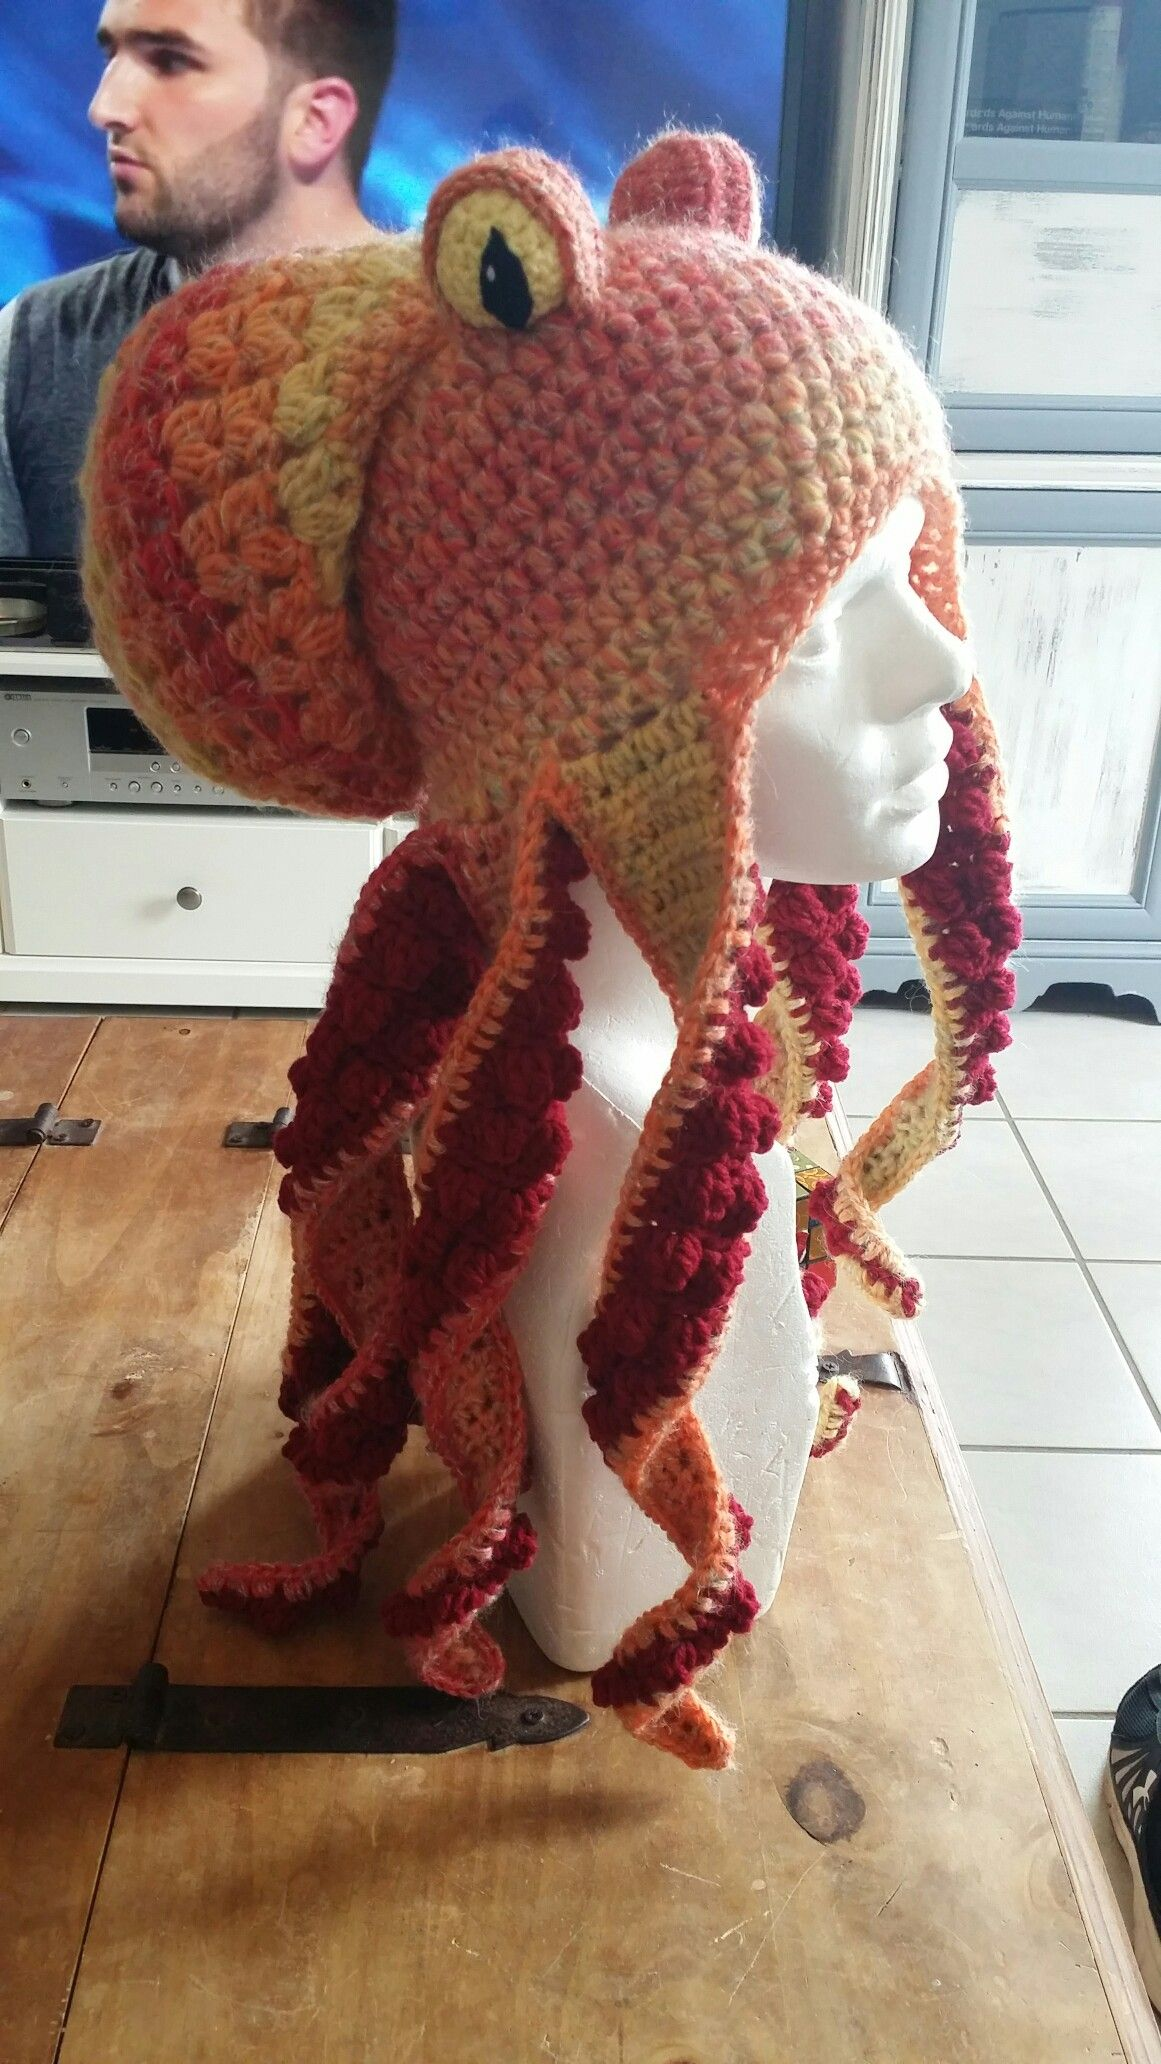 Crochet octopus hat #crochetoctopus